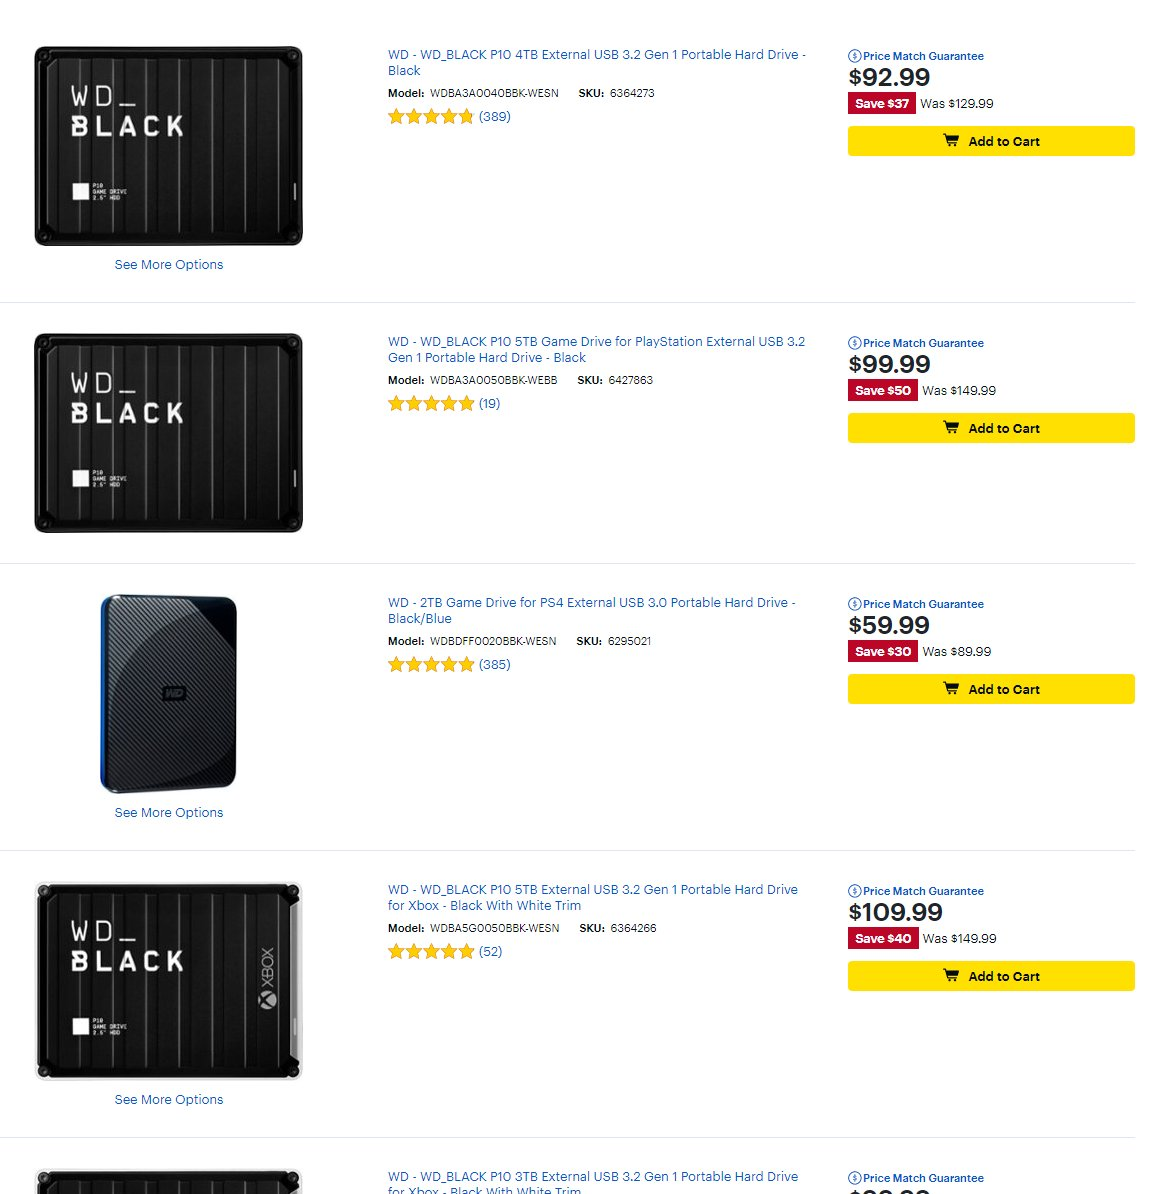 External Hard Drive sale at Best Buy